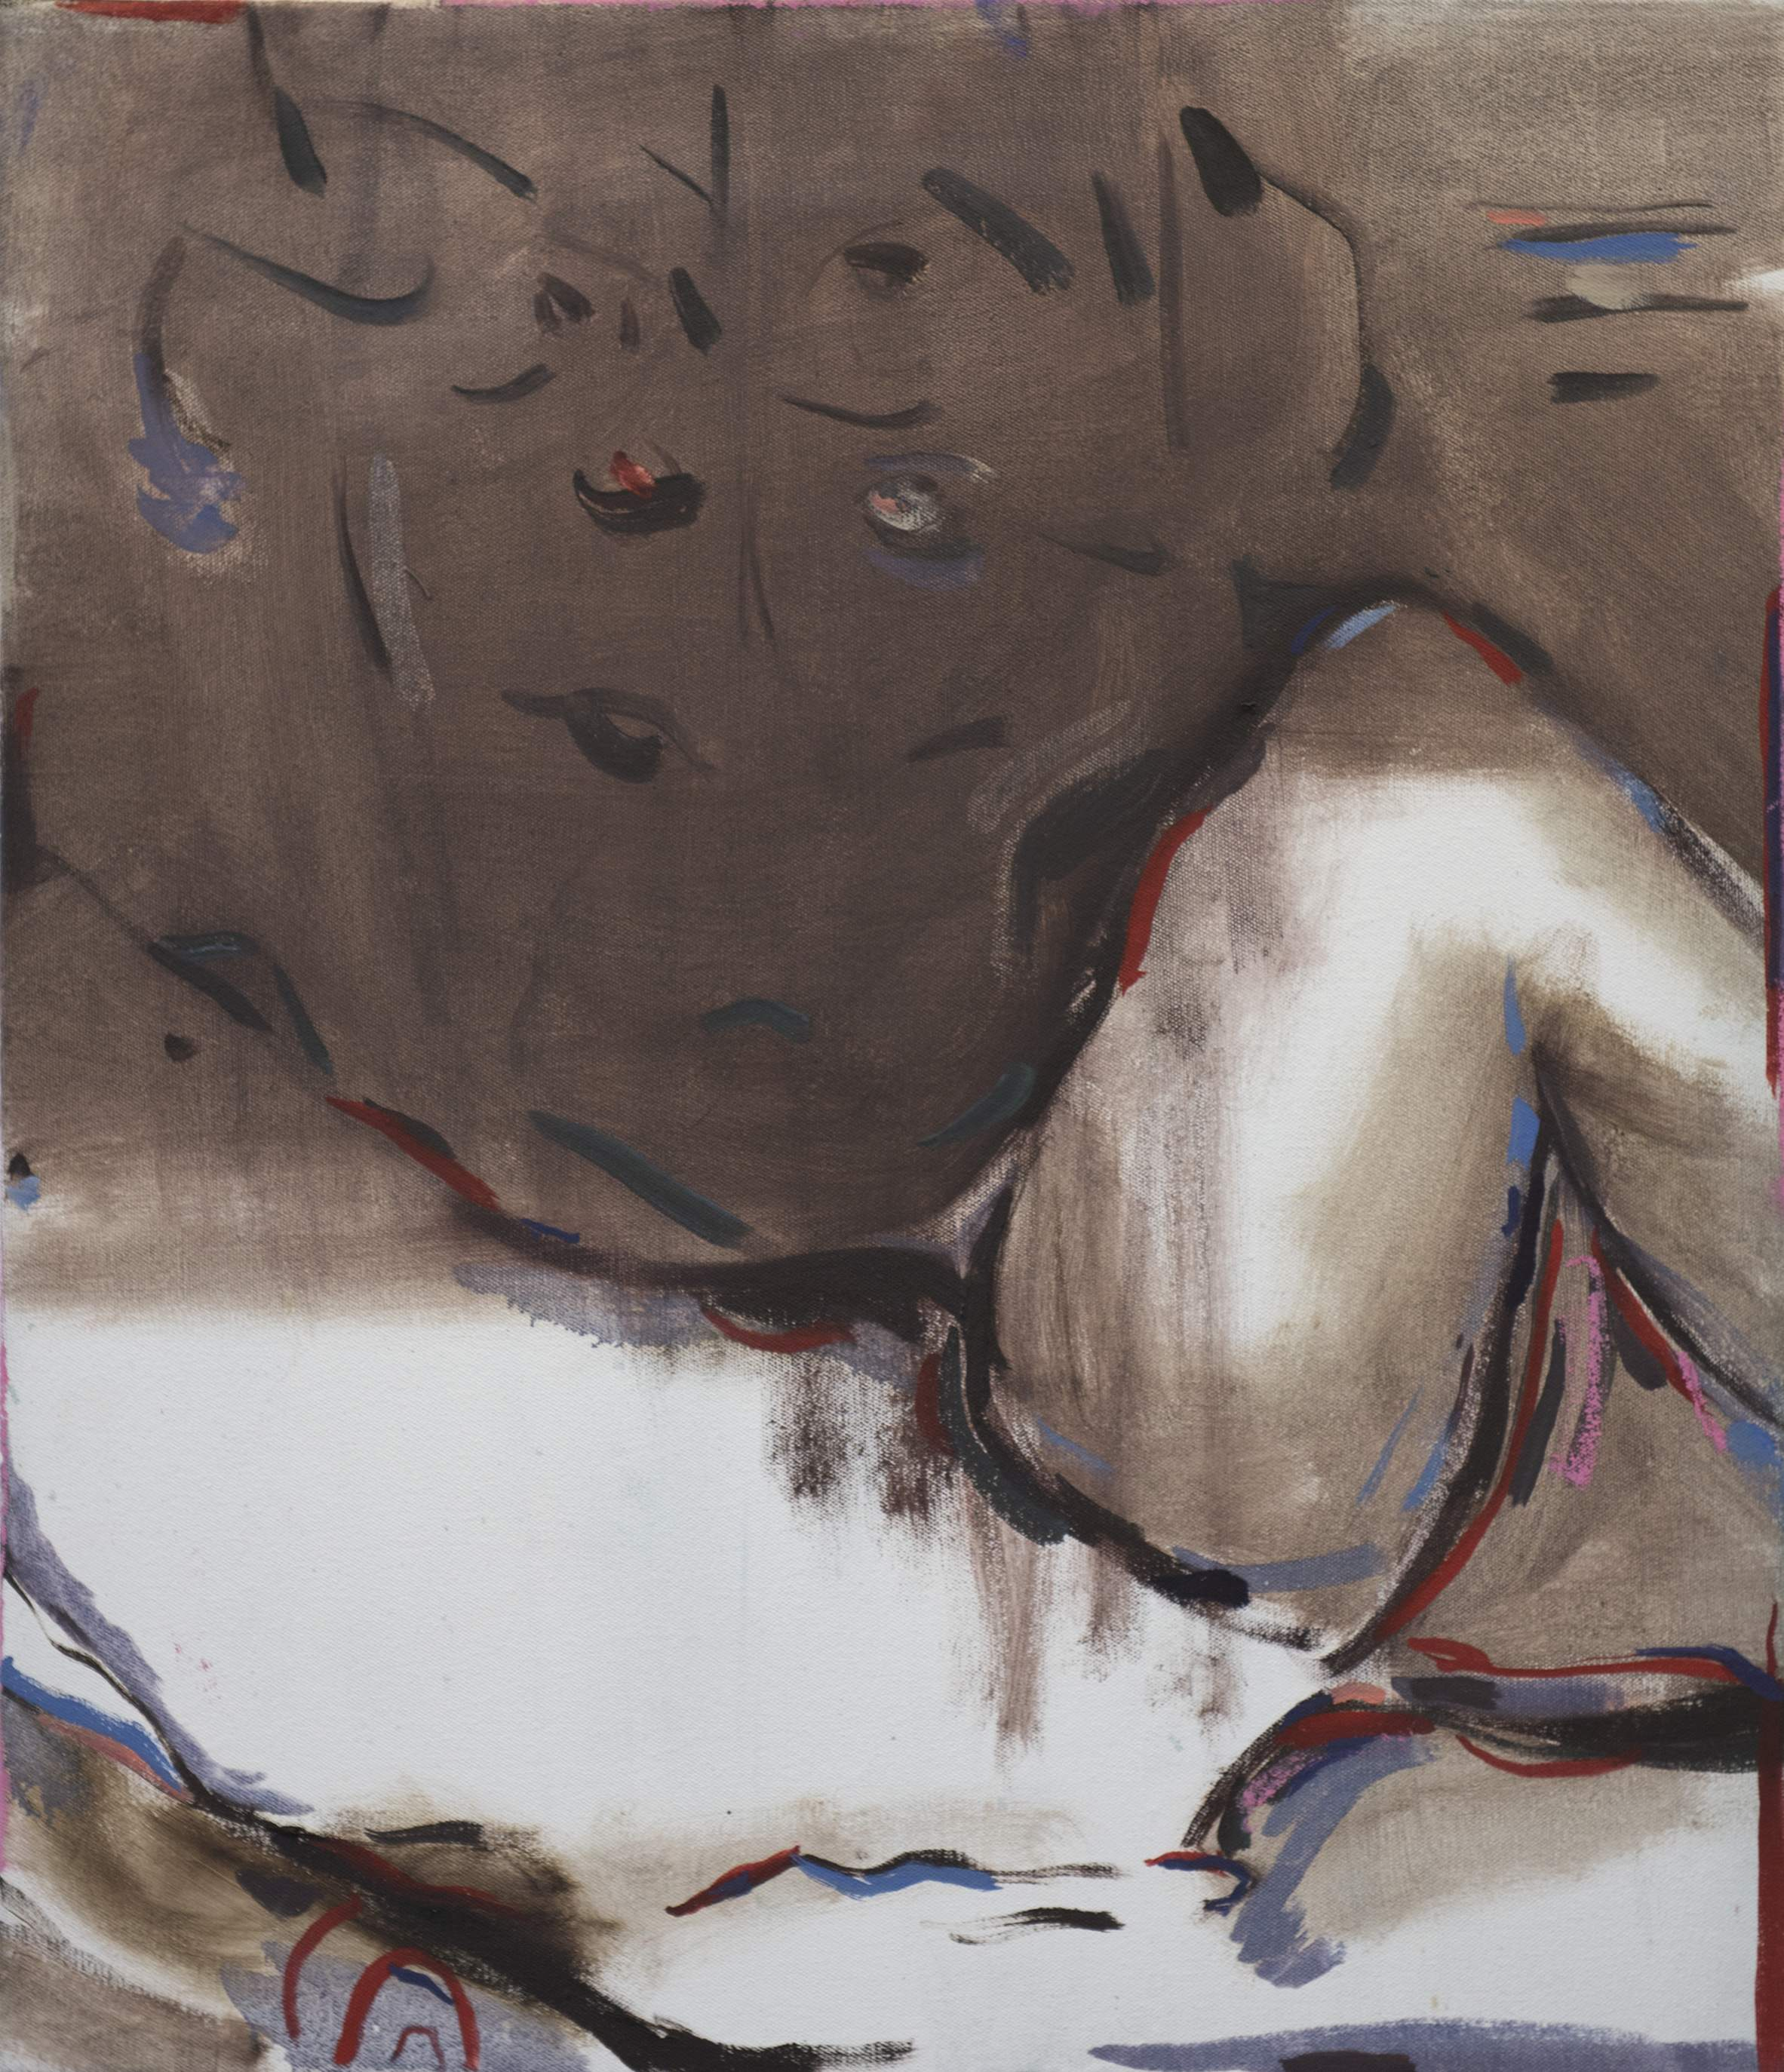 Face and body 60x70.jpg